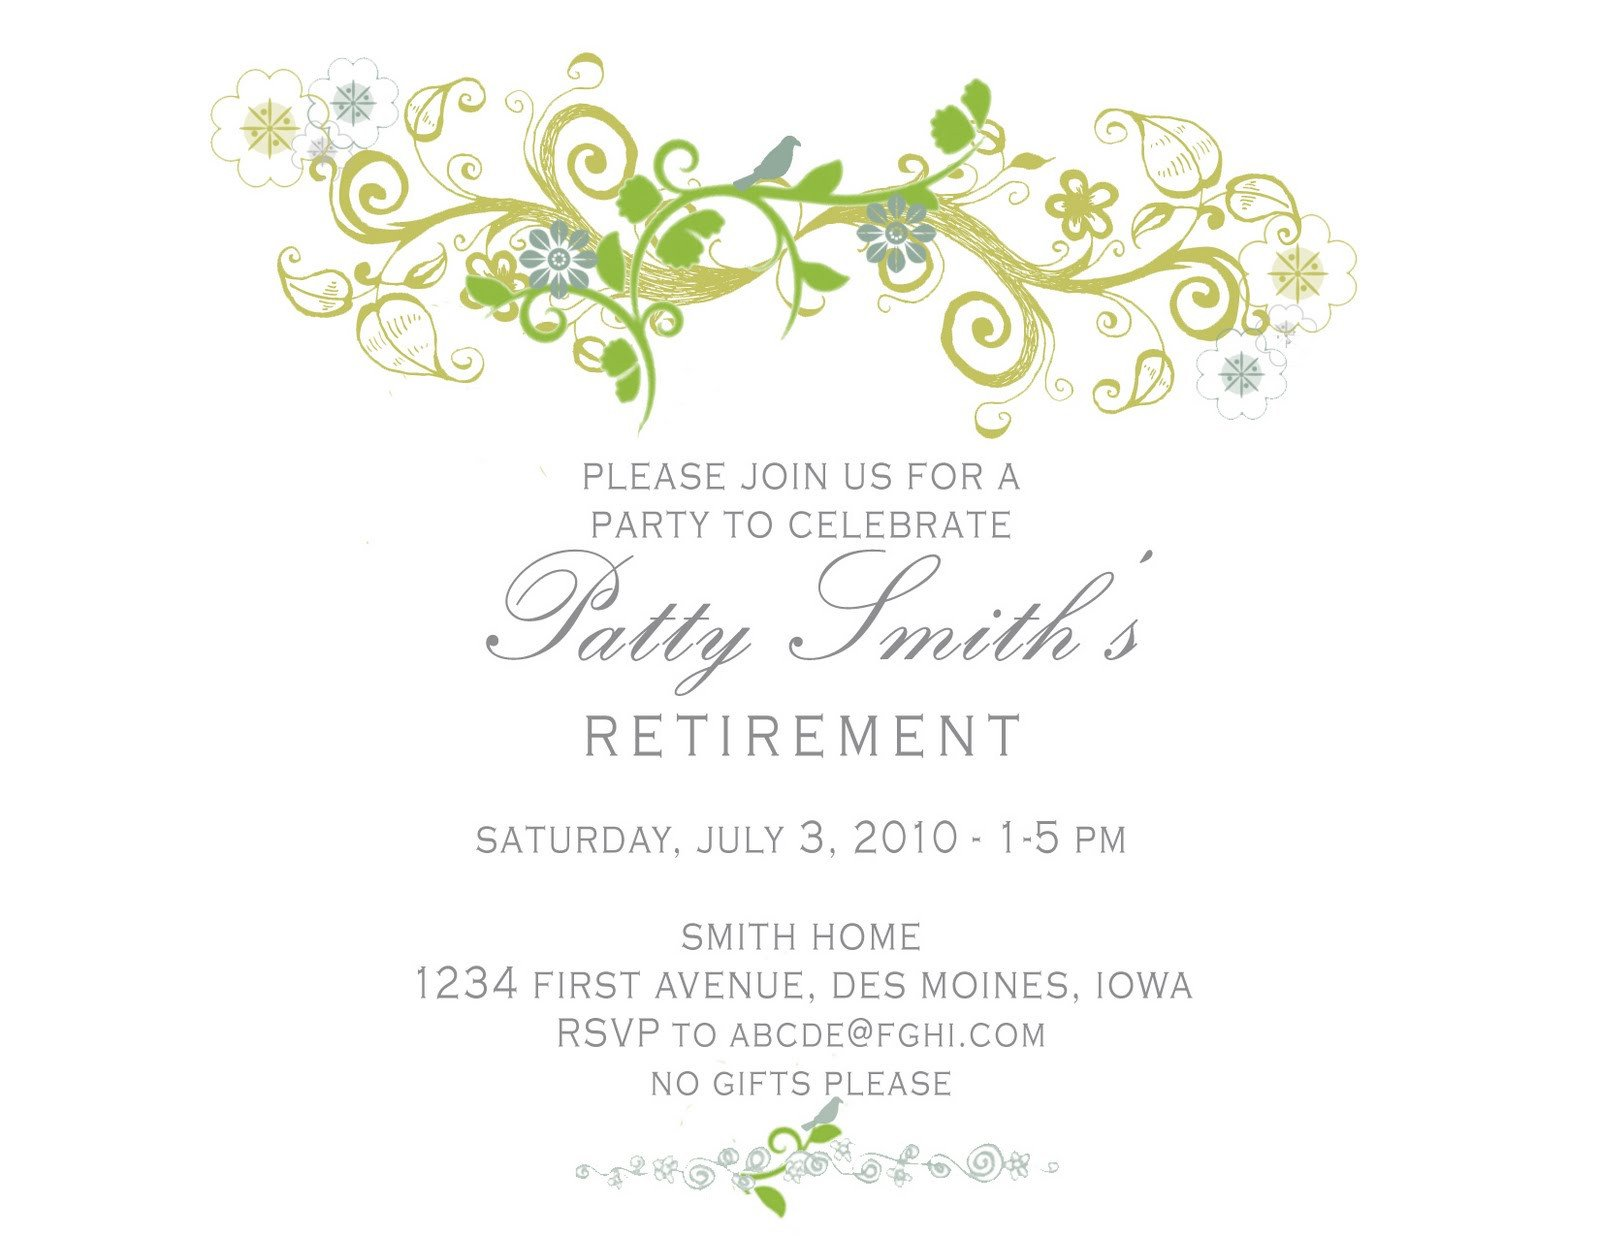 Retirement Party Invitations Templates Idesign A Retirement Party Invitation